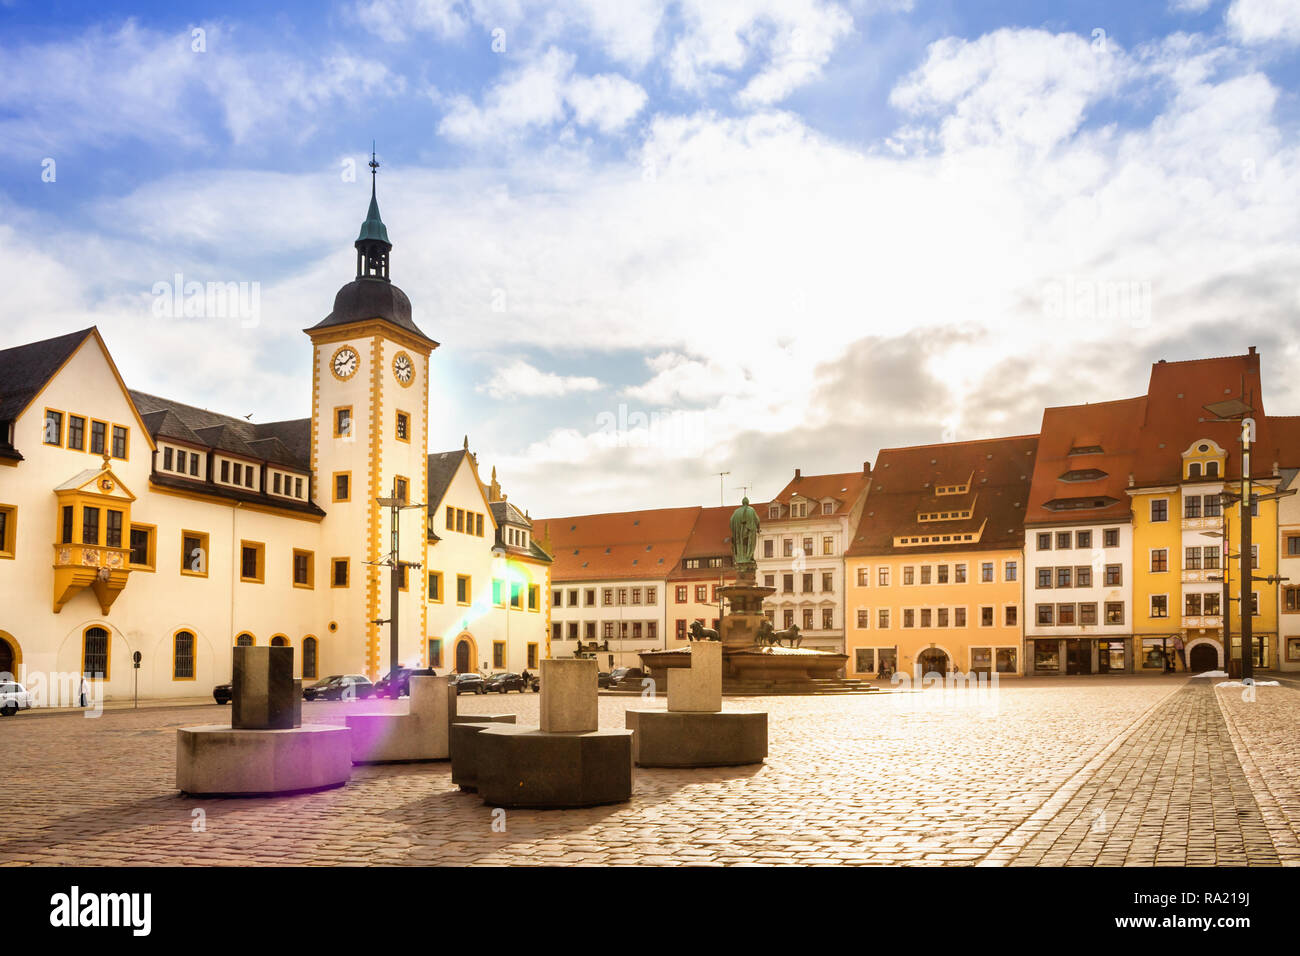 Freiberg, Market, Germany - Stock Image